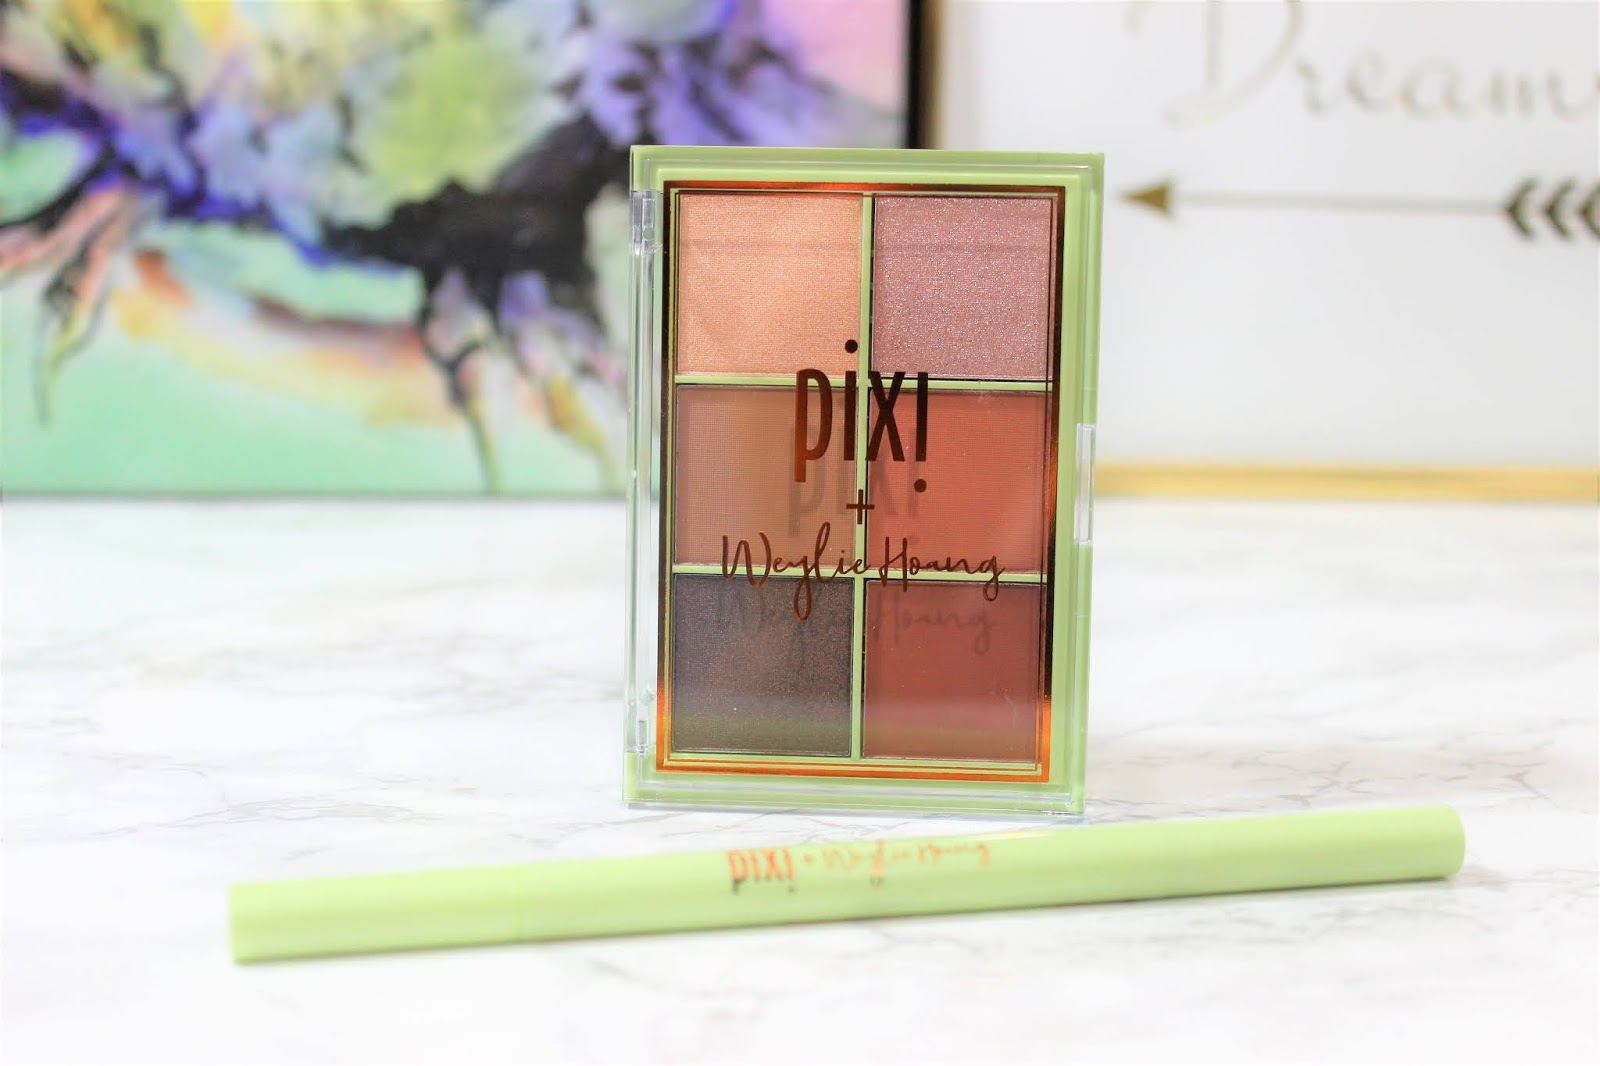 Pixi X Weylie Hoang review